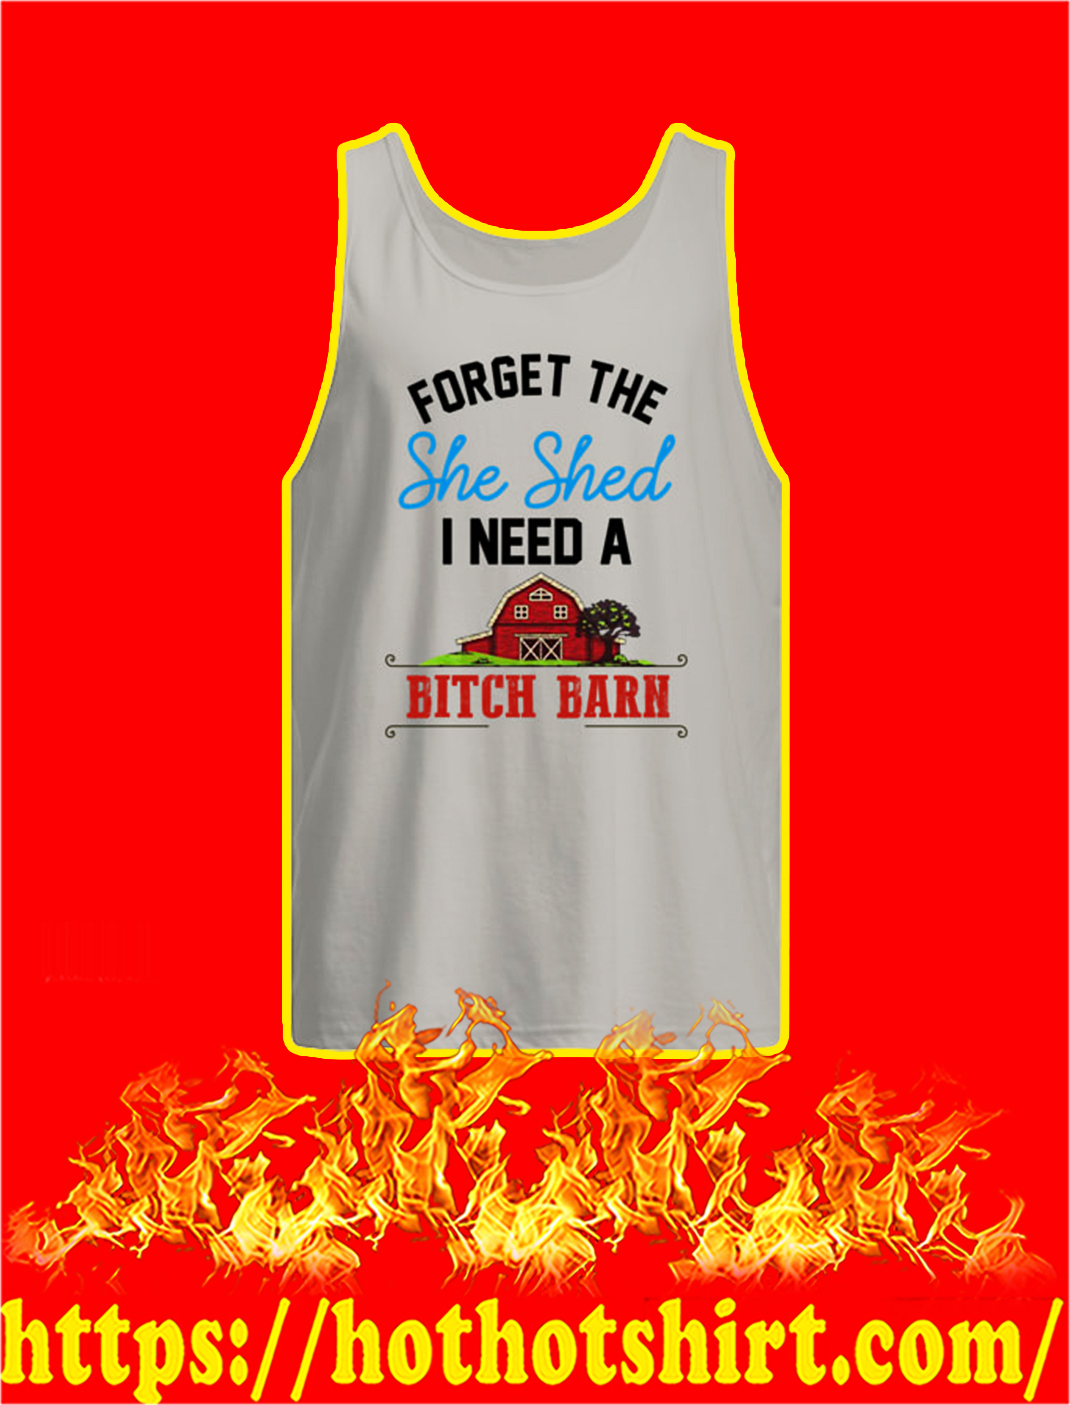 Forget The She Shed I Need A Bitch Barn tank top